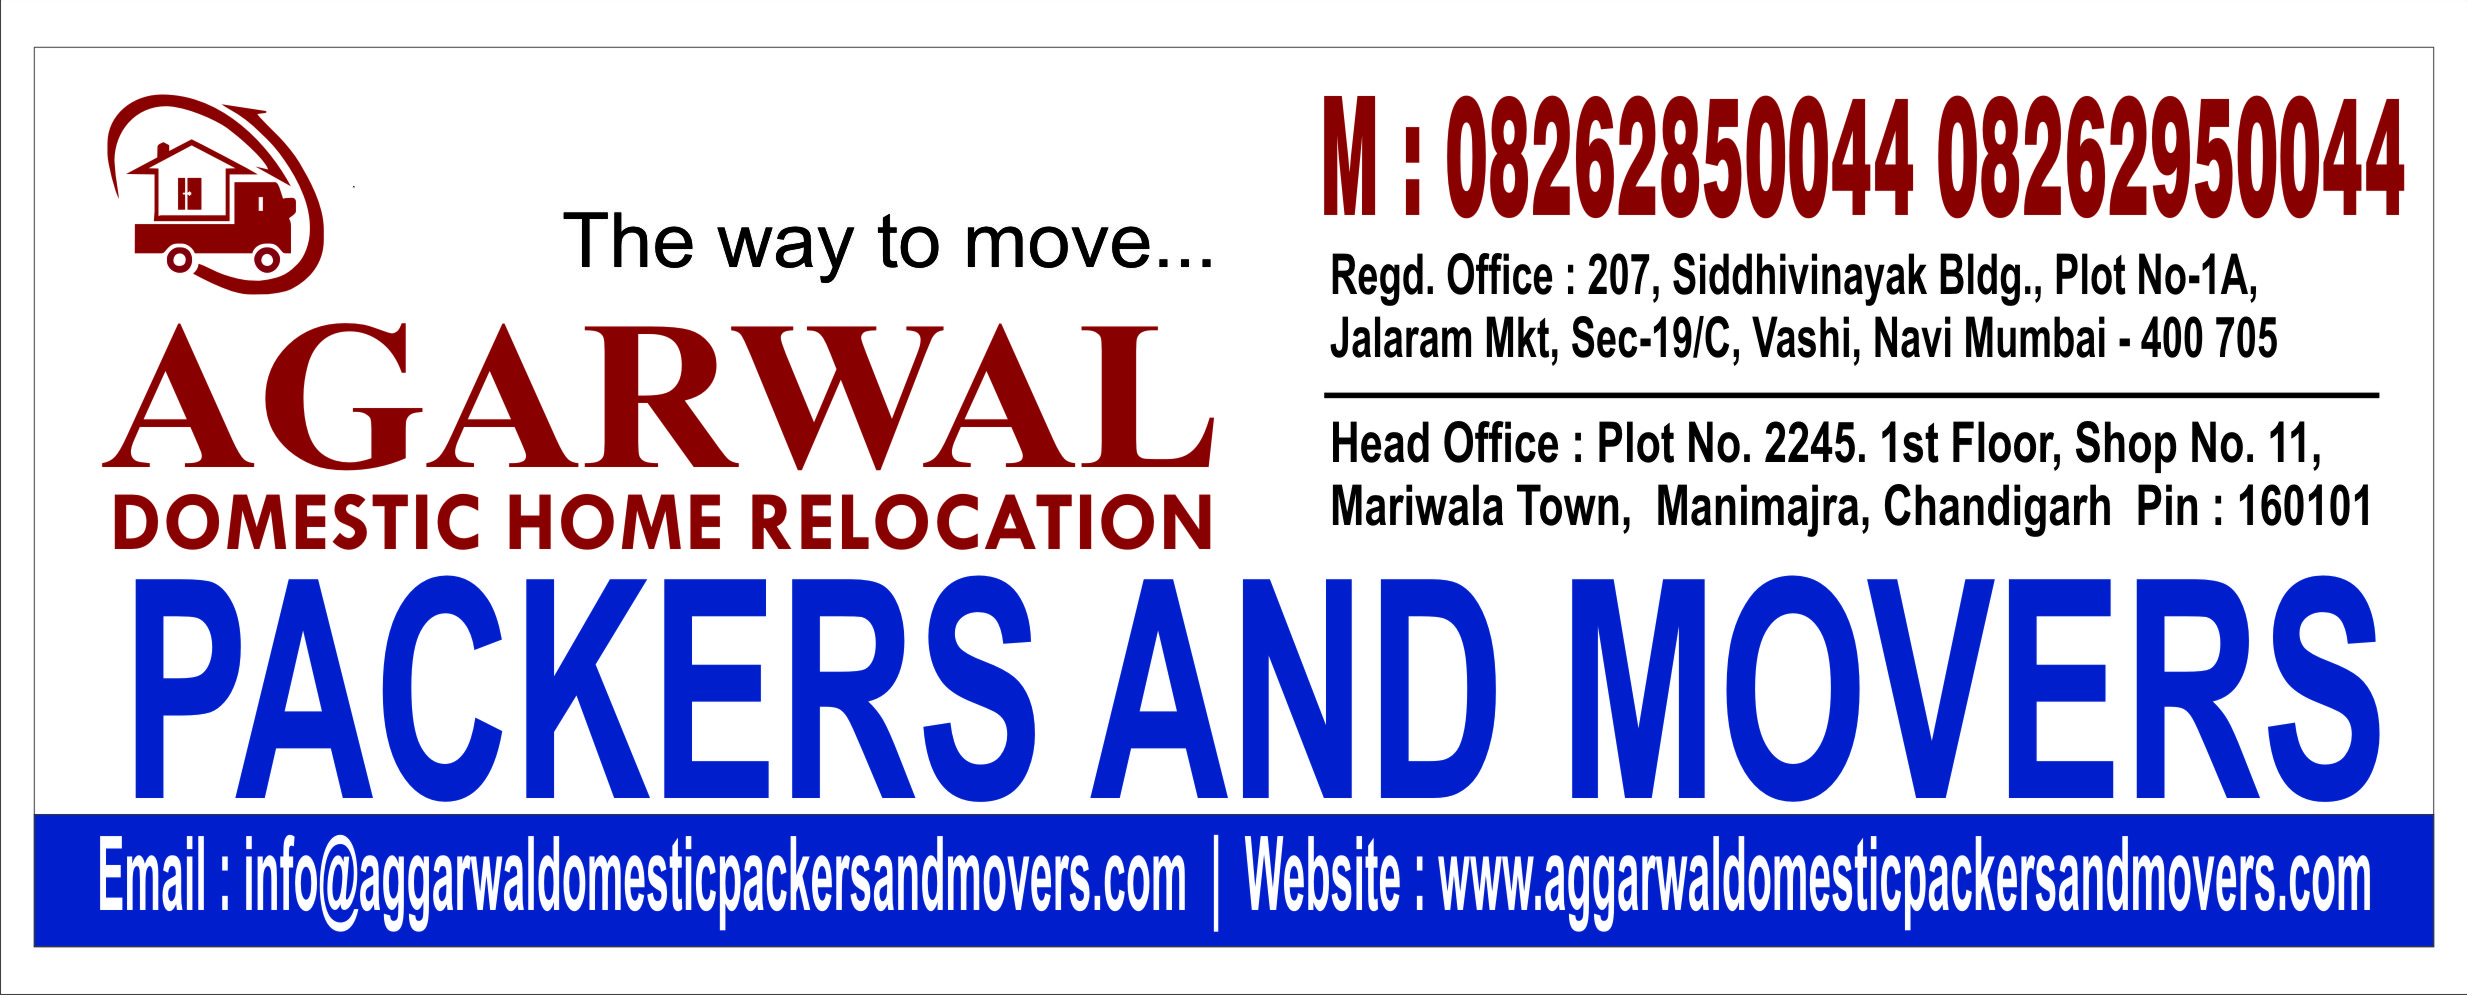 AGGARWAL PACKERS & MOVERS